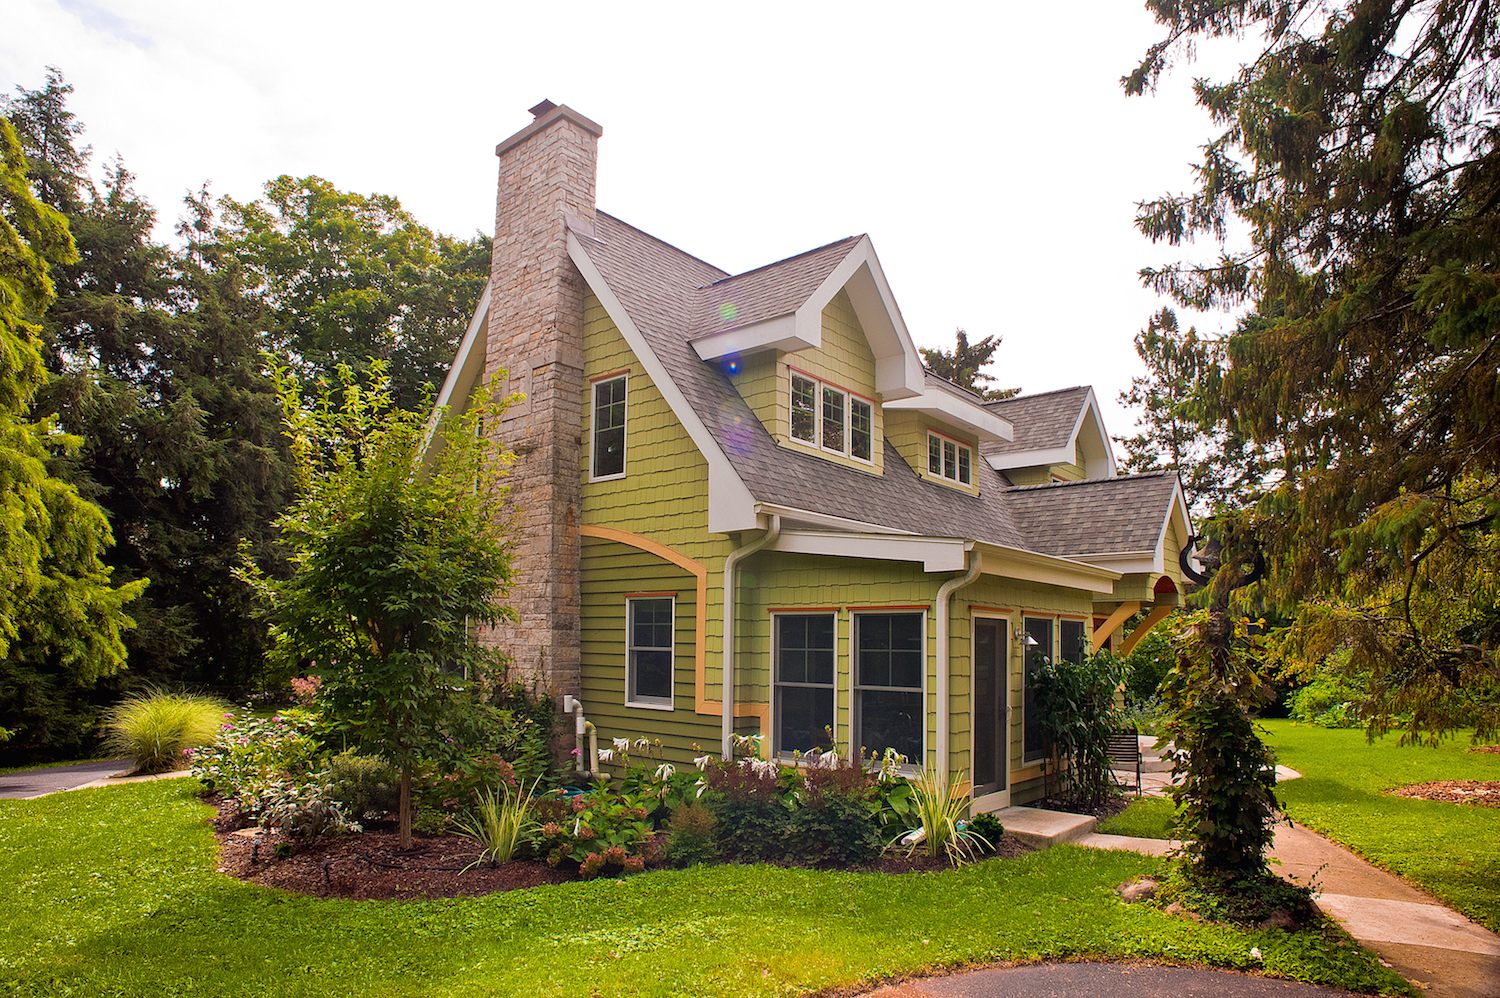 The tan banding around the home's exterior provide visual interest and separation of different siding types.